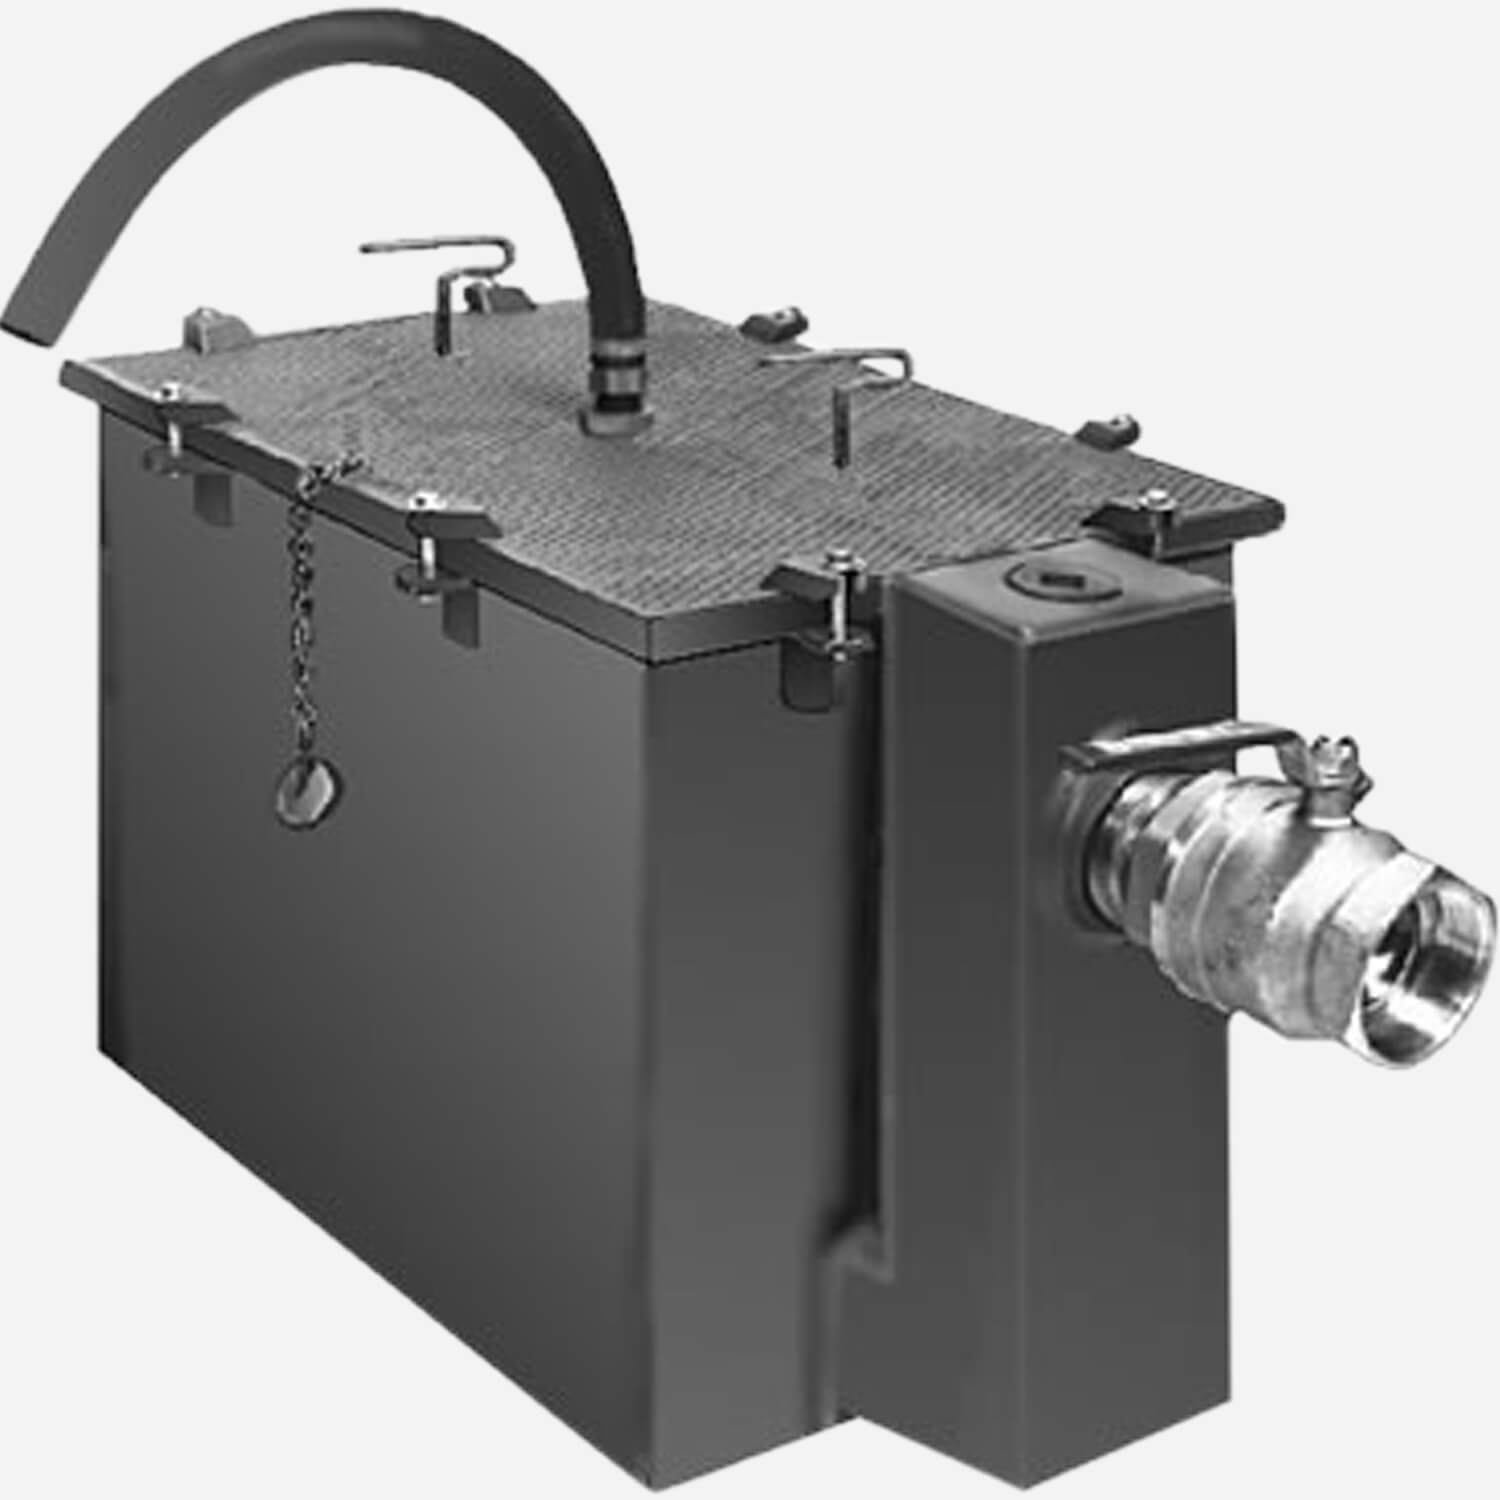 Grease Interceptors with Semi-Automatic Draw-Off for Recessed Installation